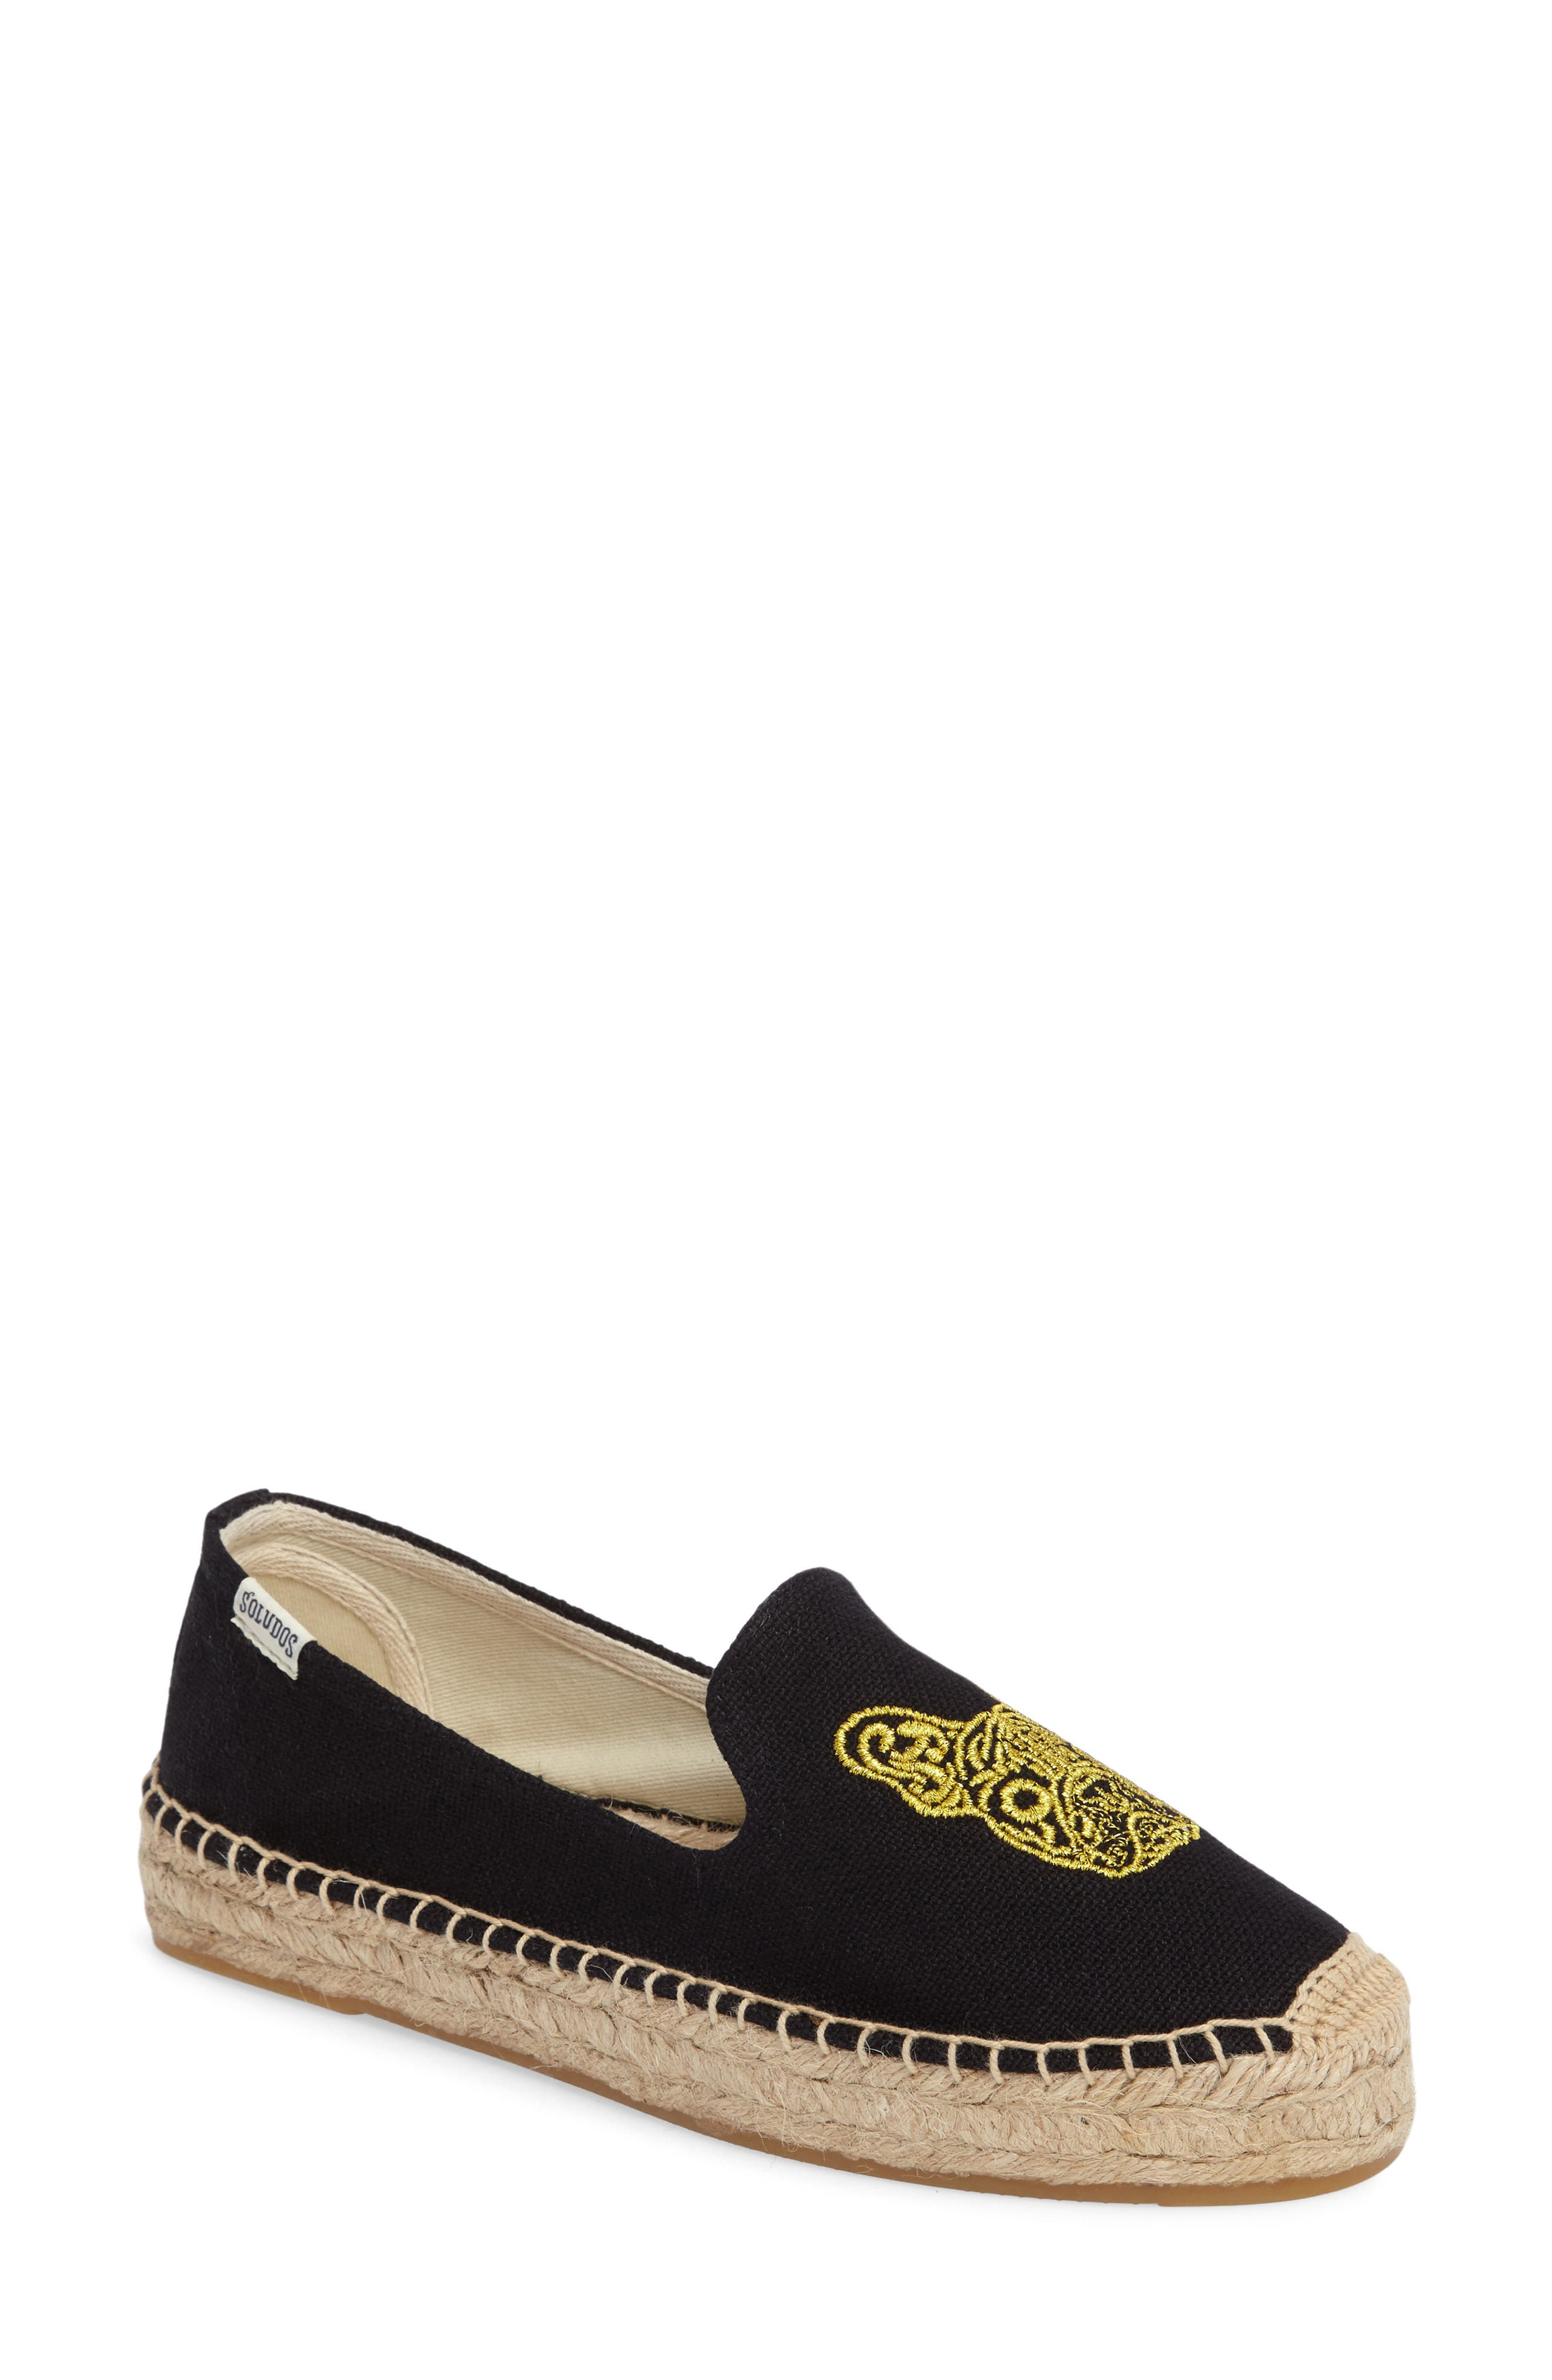 Frenchie Espadrille Loafer,                         Main,                         color, 006